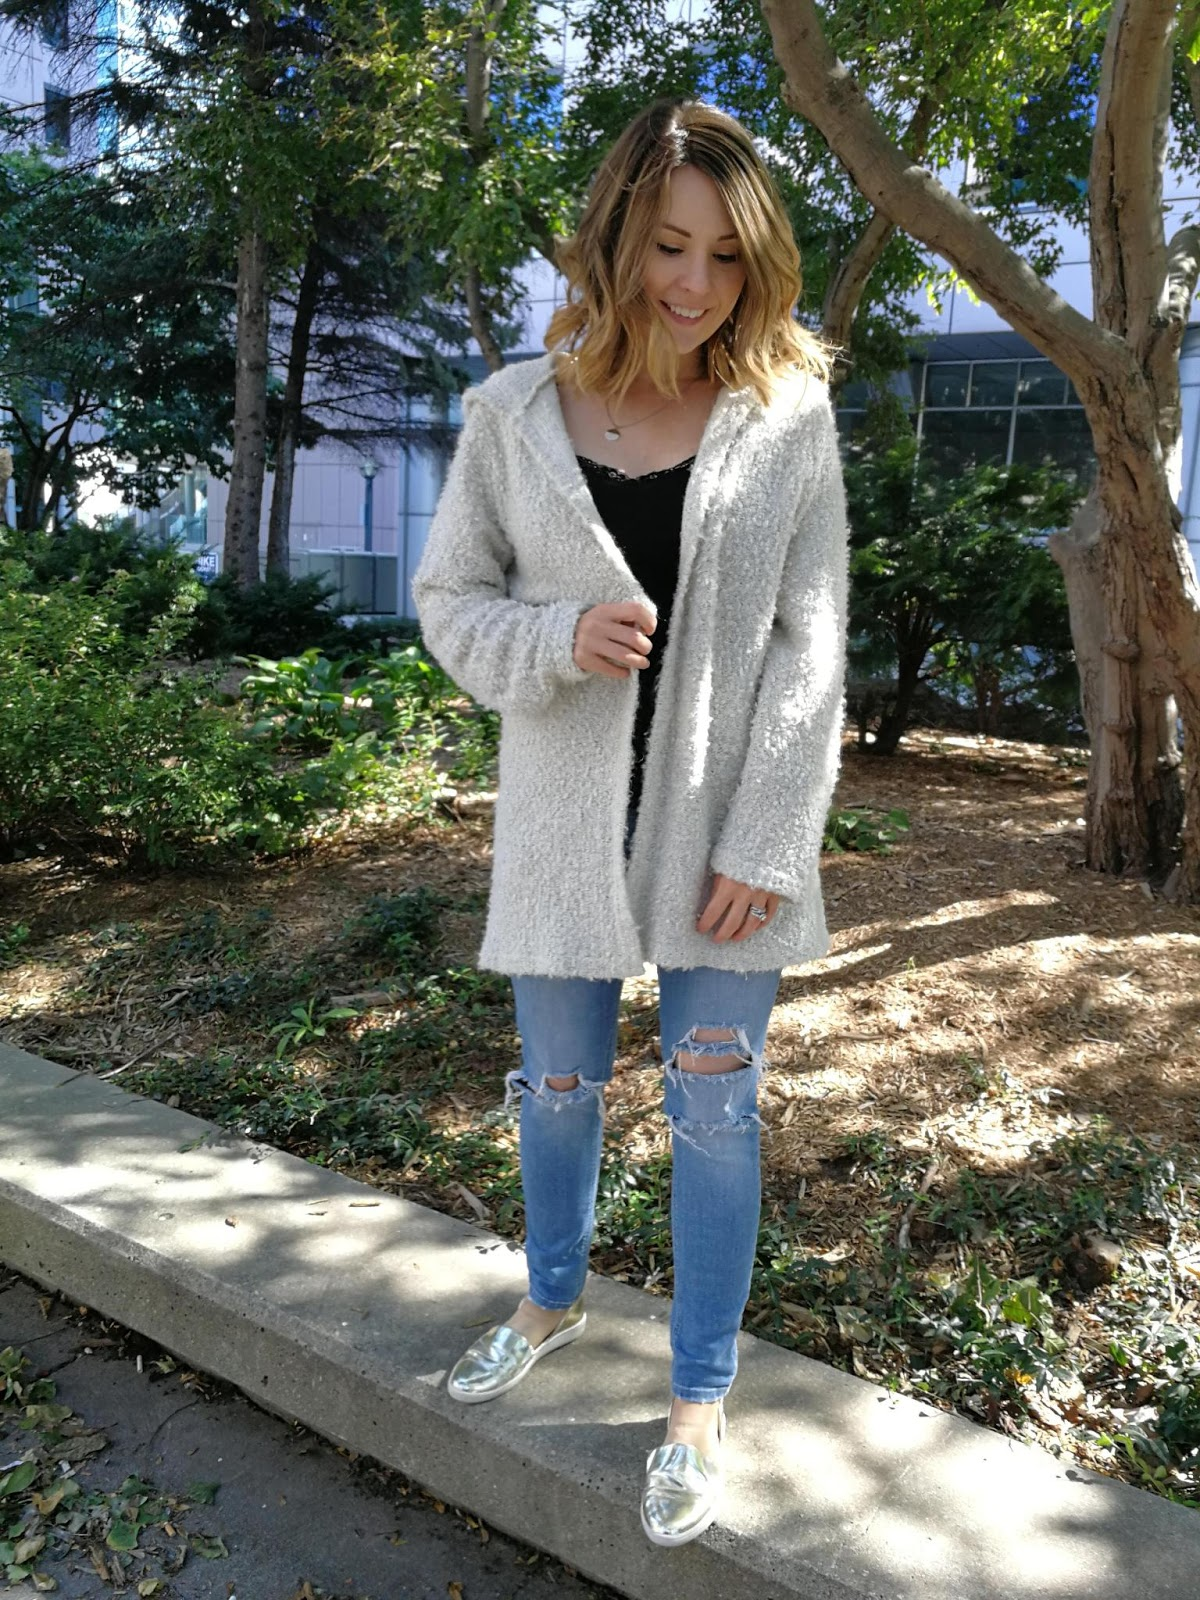 Teddy bear sweater, ripped jeans and gold flats